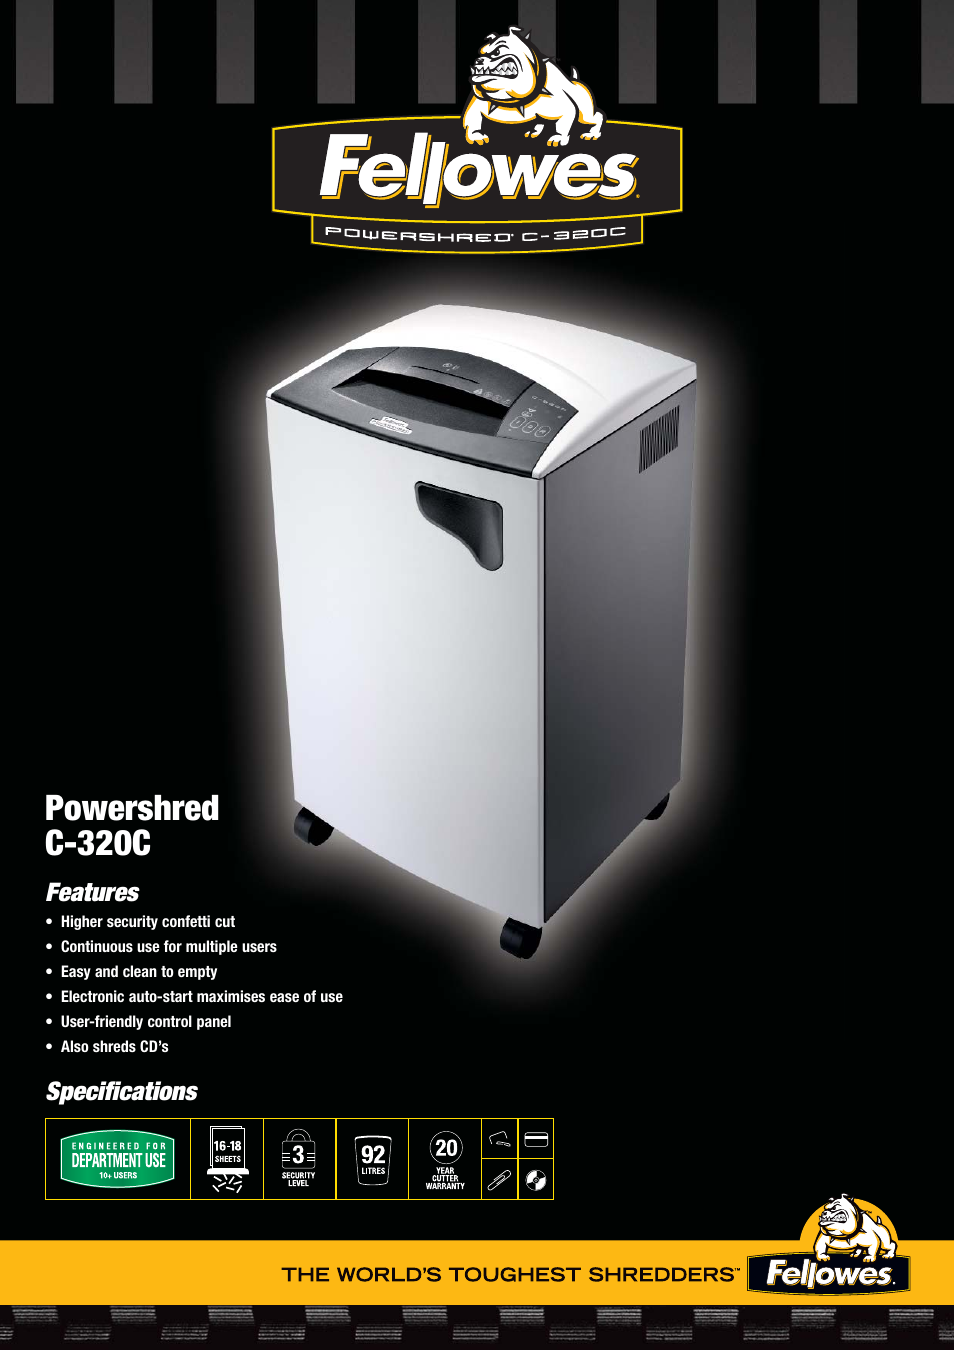 fellowes powershred c 320c user manual 2 pages rh manualsdir com